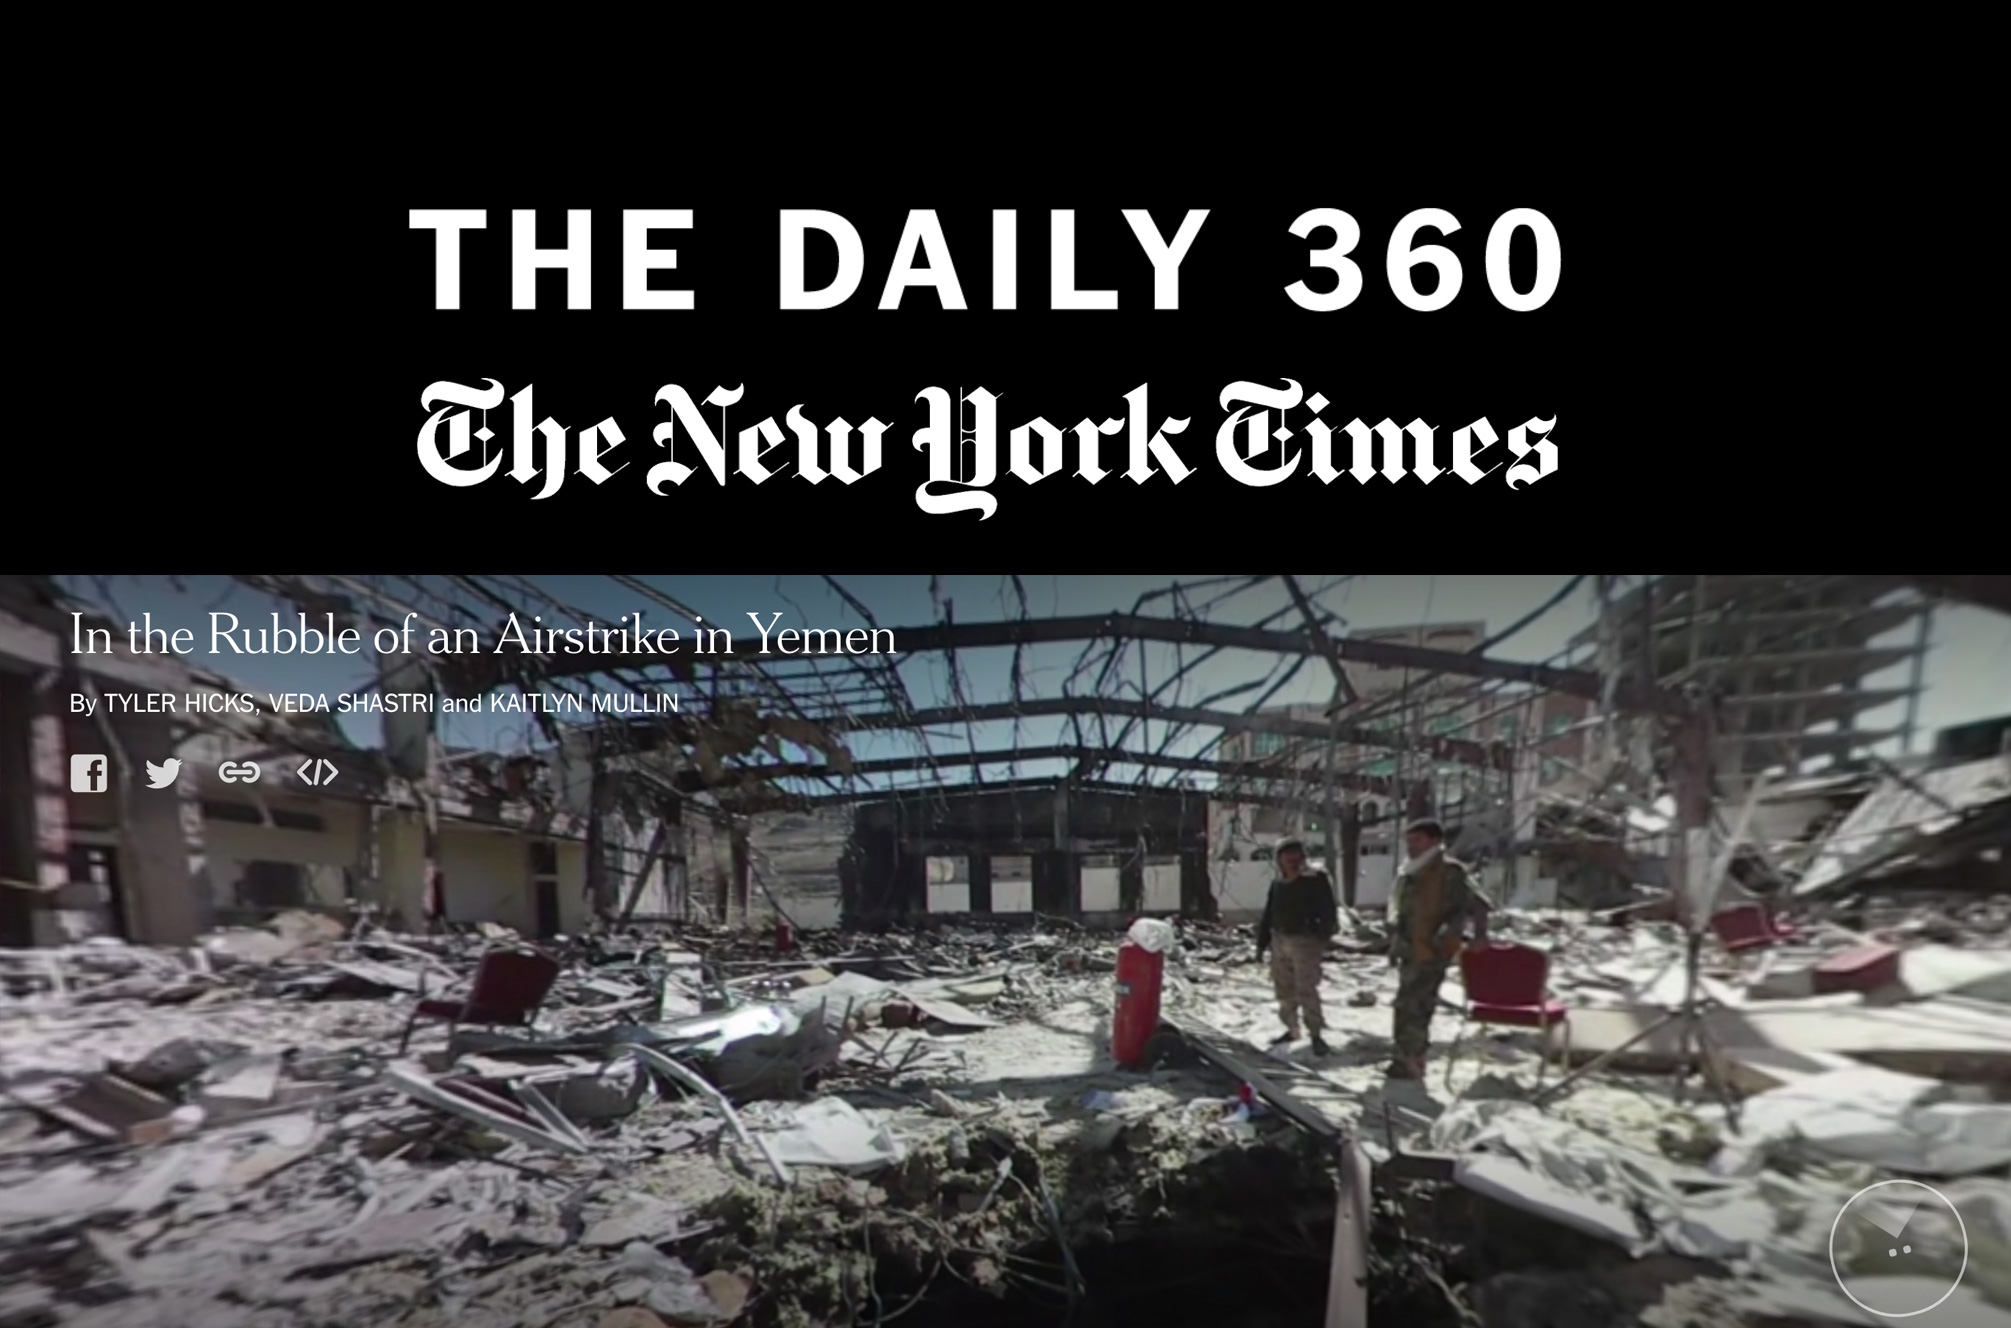 the-daily-360-the-new-york-times-featured-image